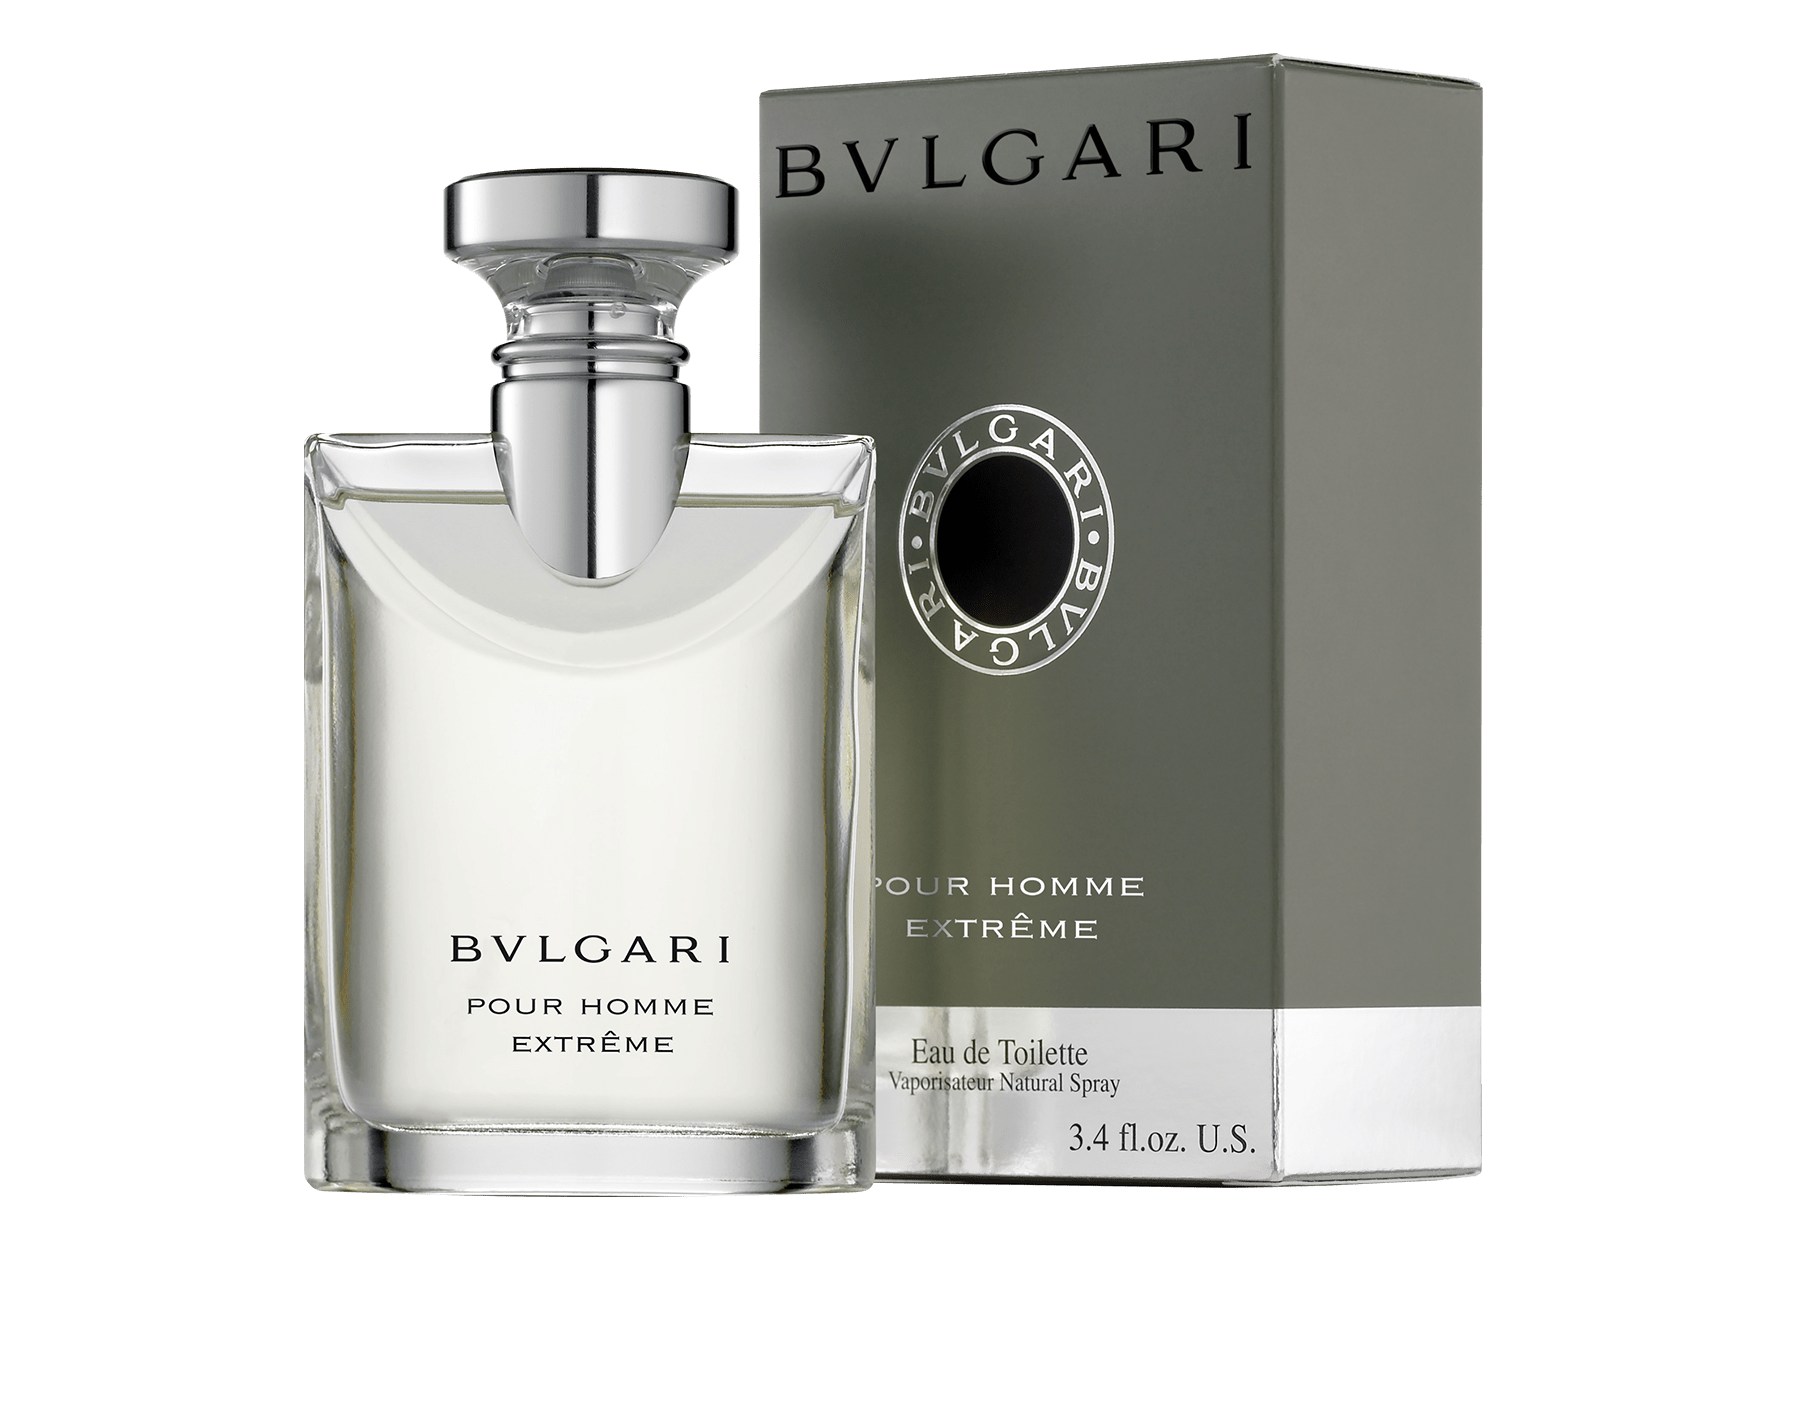 A contemporary and classic fragrance for men 83370 image 2